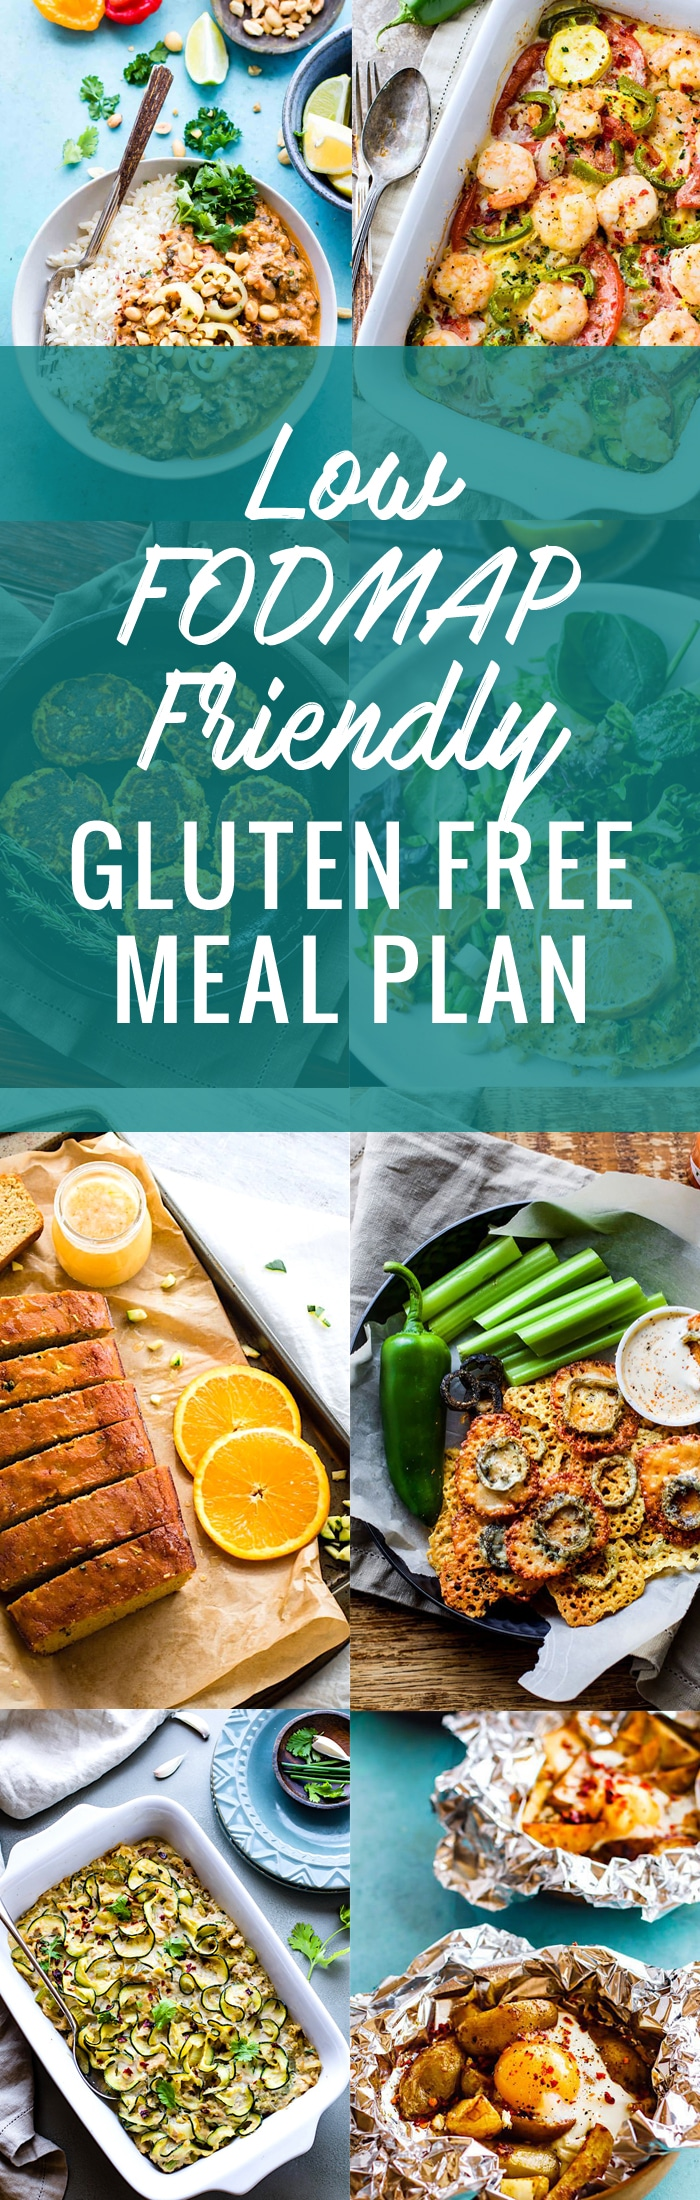 This Low FODMAP friendly Gluten Free Meal Plan is a great tool to help you resolve those pesky digestive issues. Learn what FODMAPS are, what foods they come from,  and how limiting them could possibly (temporarily)  relieve common digestive disorders and discomfort.